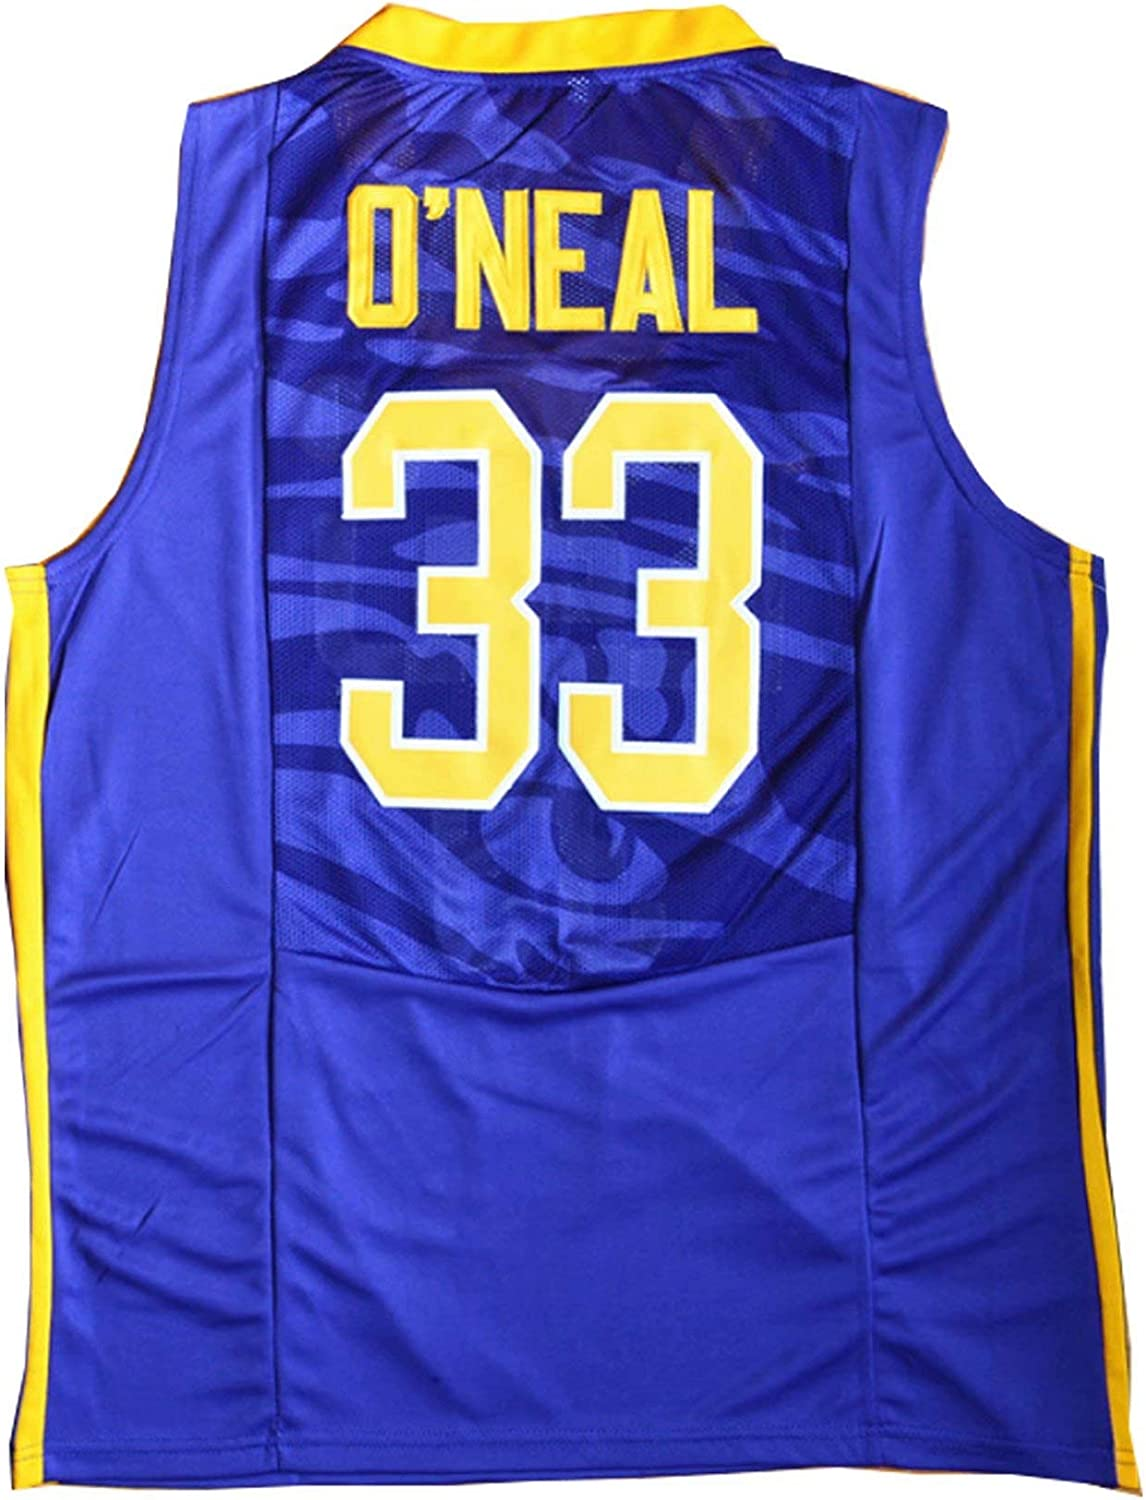 MLOP Men Fans/Gift College Athletic Jersey Screen Print #33 Shaq Universities Basketball Team/ Player Breathable Jersey S-3XL